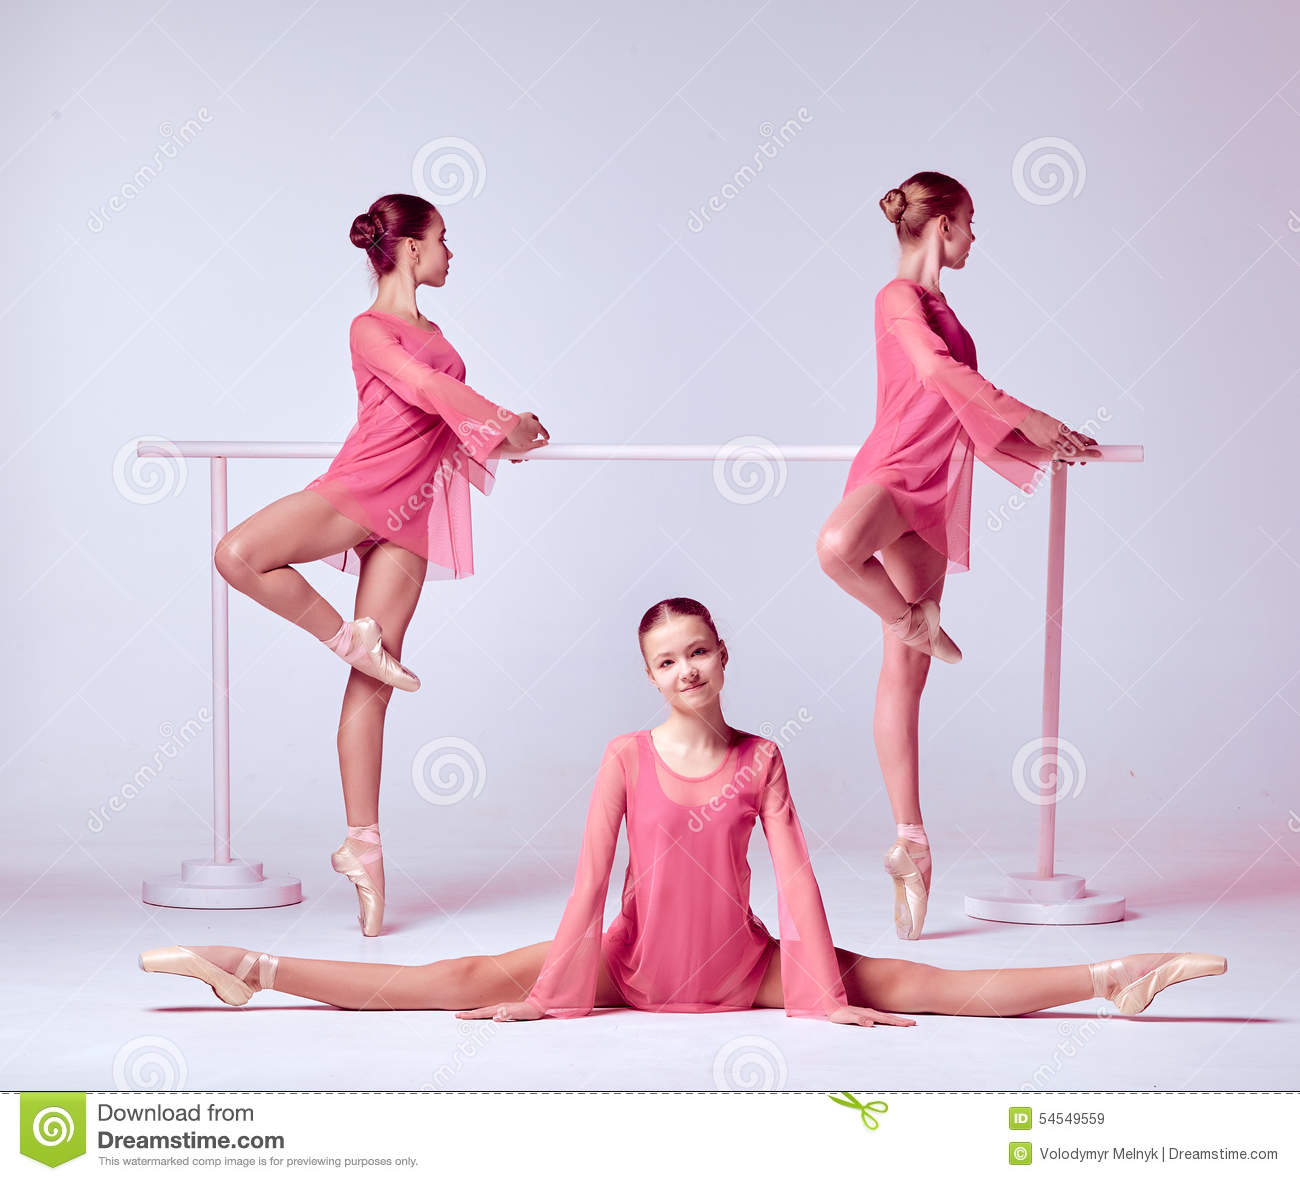 ballerinas stretching on the bar stock image - image of pretty